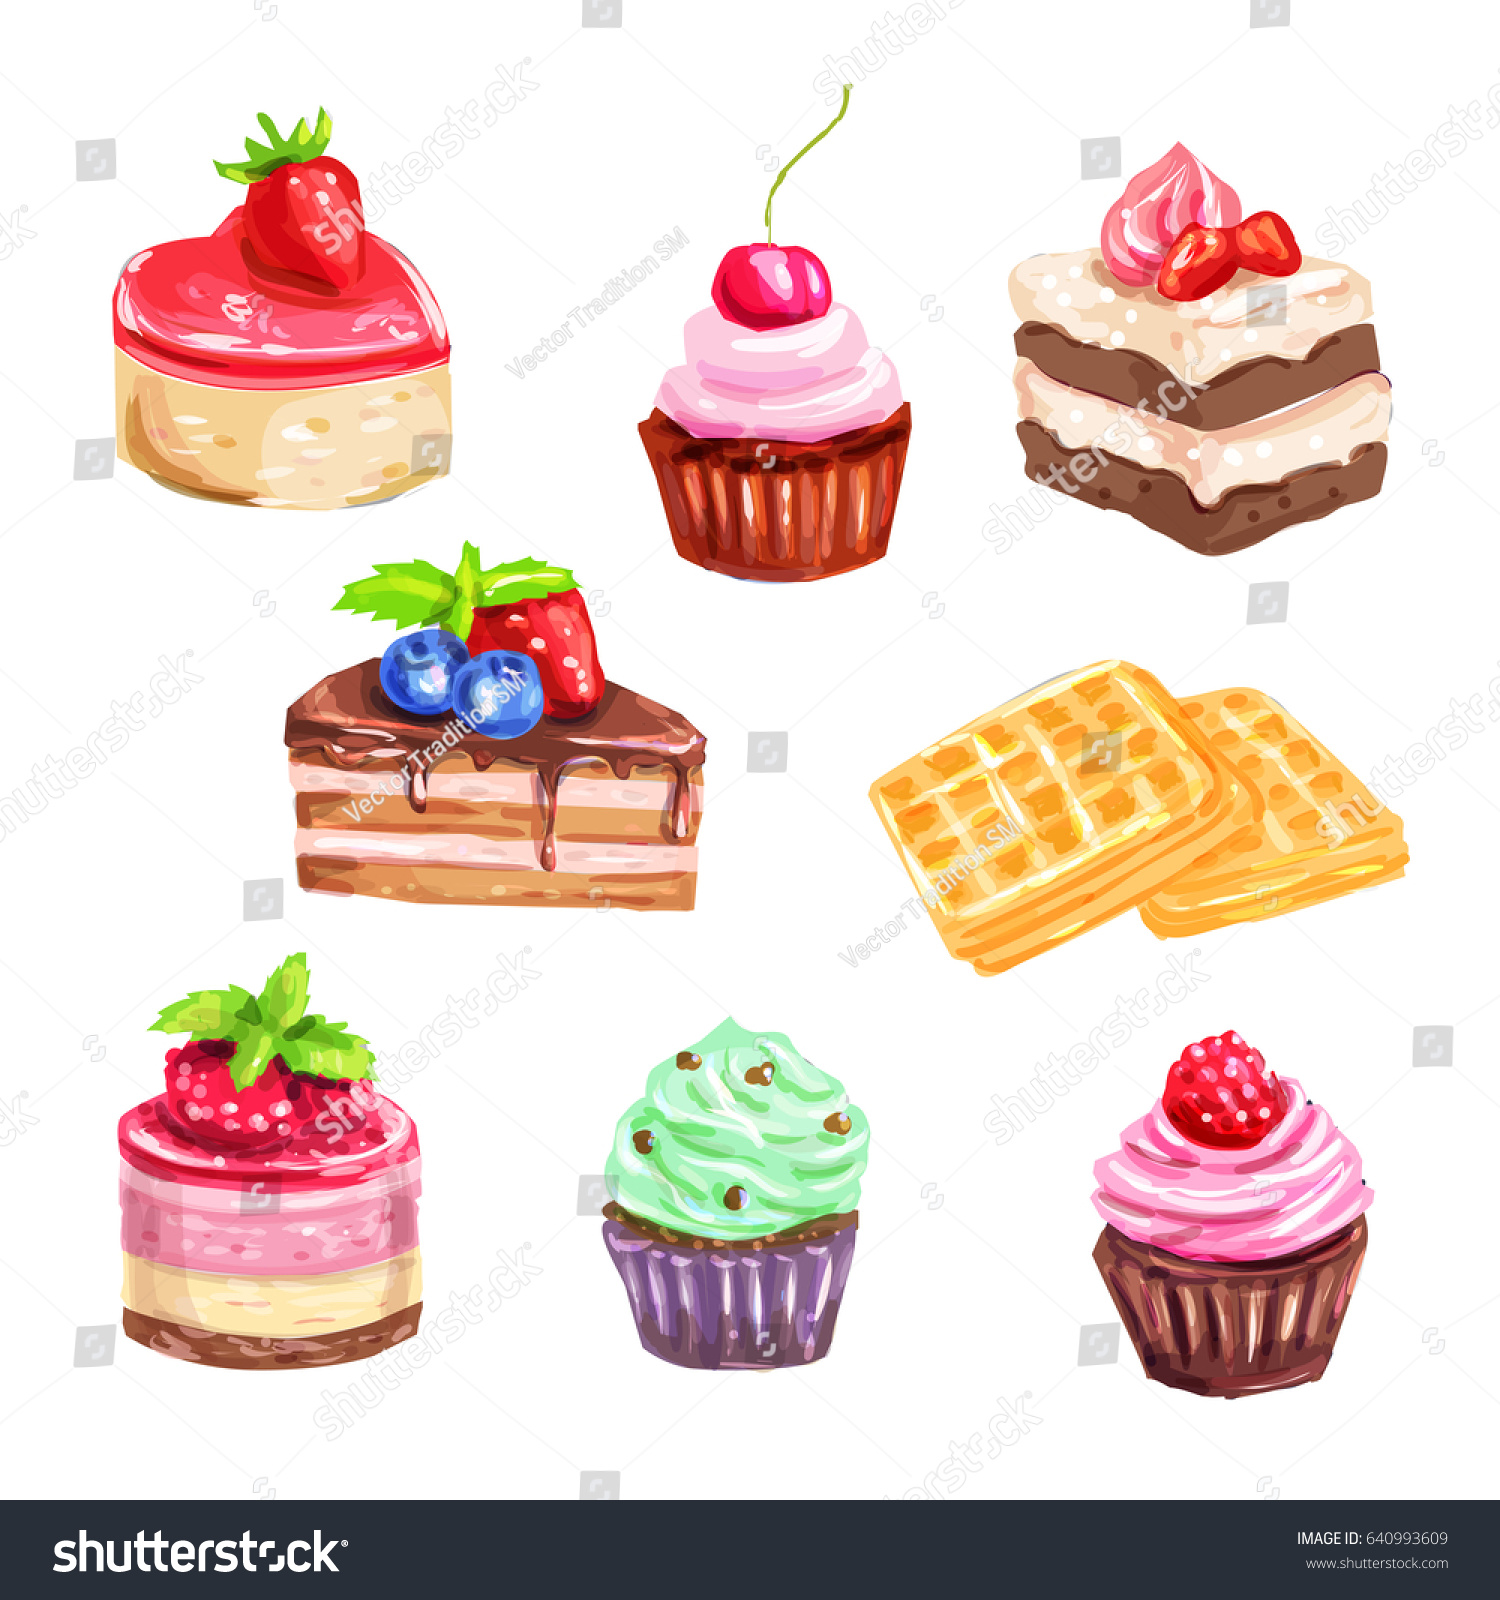 Cake Pastry Dessert Set Watercolor Chocolate Stock Vector (2018 ...